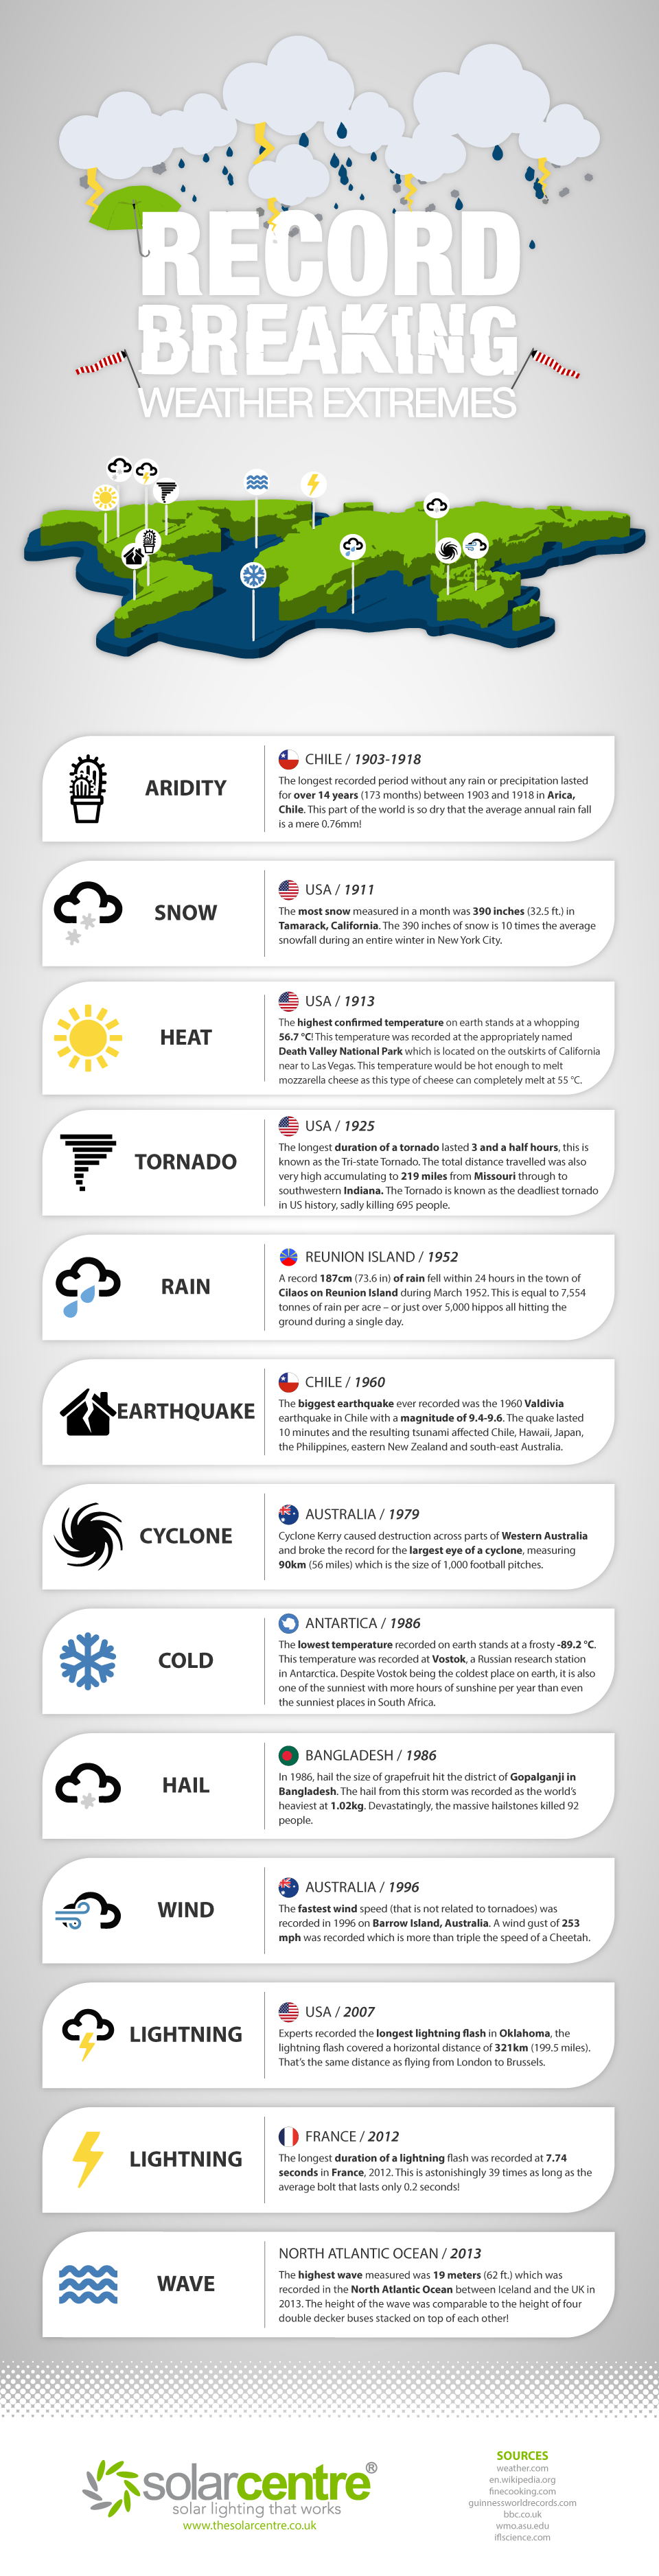 These Weather Conditions Broke The Records! - Infographic